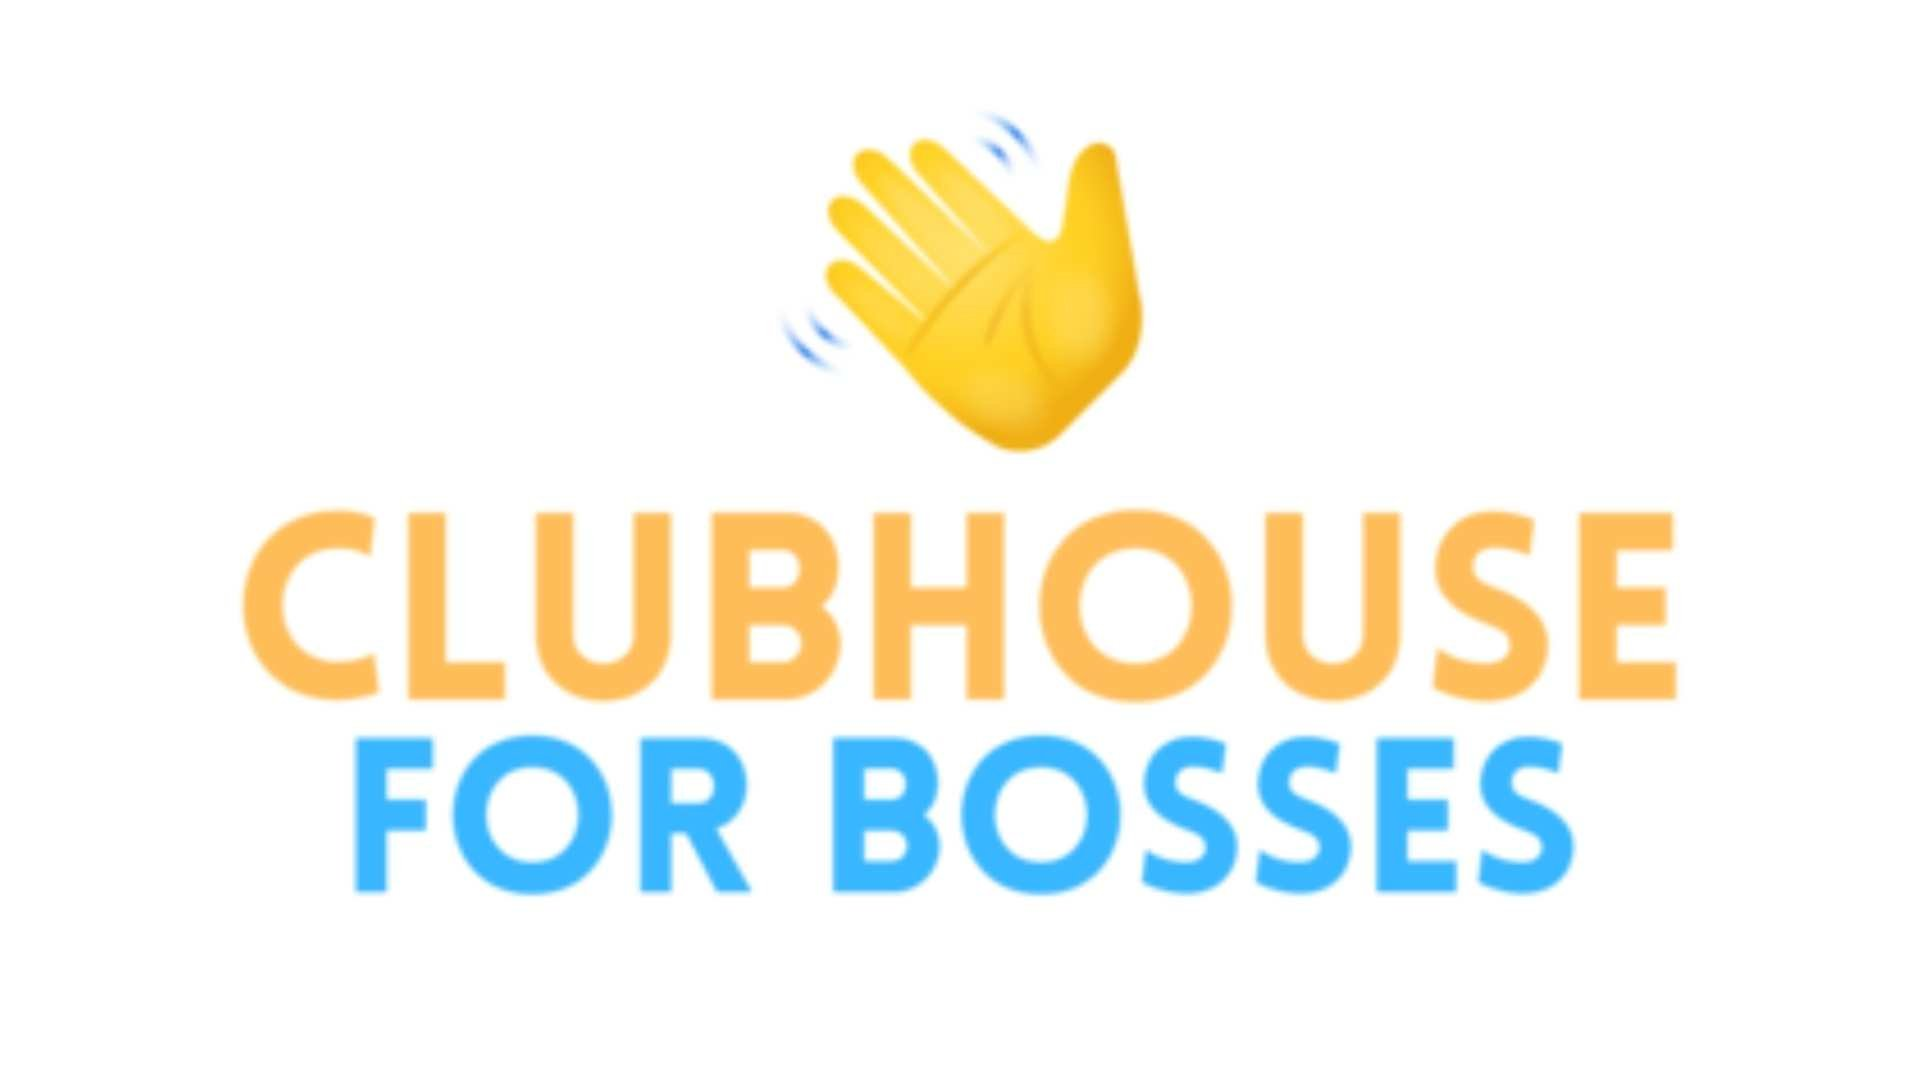 CLubhouse for bosses